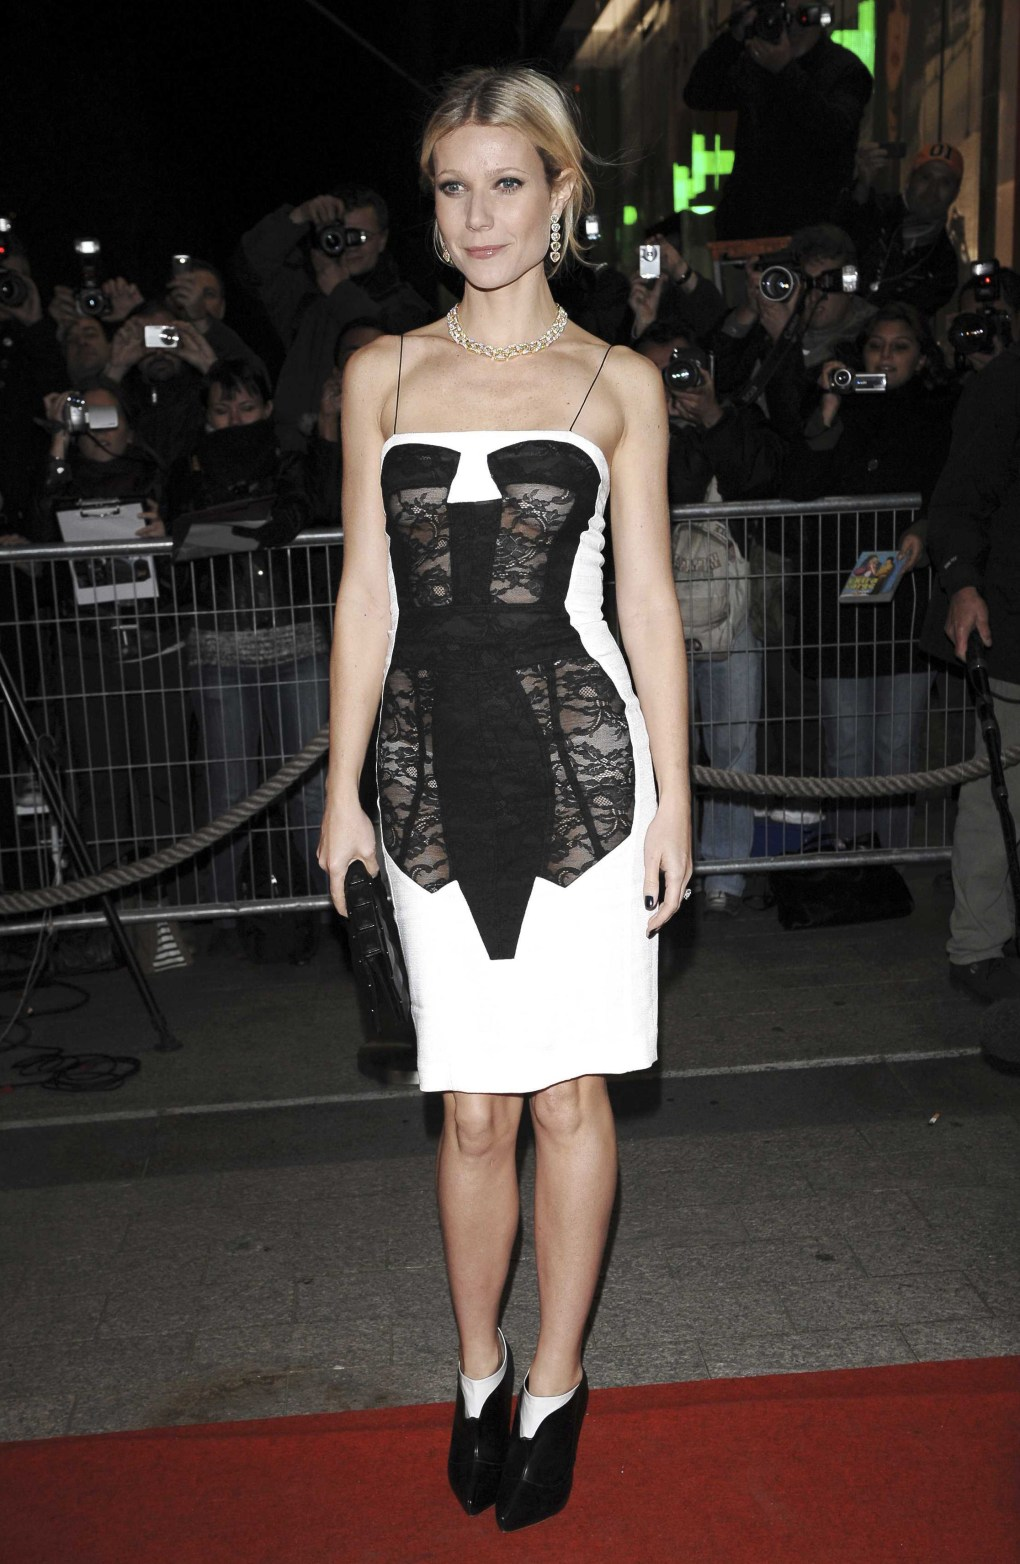 Vestido trompe l'oeil corset diseñado por Antonio Berardi, Primaera-Verano 2009, vestido por Gwyneth Paltrow. Foto: Sipa Press/REX Shutterstock (814298c) Gwyneth Paltrow 'Two Lovers' film premiere, Paris, France - 04 Nov 2008 Directed by James Gray and starring Joaquin Phoenix, Gwyneth Paltrow, Vinessa Shaw and Isabella Rossellini, 'Two Lovers' is a Brooklyn-set romantic drama about bachelor Leonard (Phoenix), who moves back in with his parents following a recent heartbreak. His concerned parents try to set him up with Sandra (Shaw), the sweet and caring daughter of a close family friend. However, Leonard finds himself torn between Sandra and his beautiful but volatile new neighbour, Michelle (Paltrow).